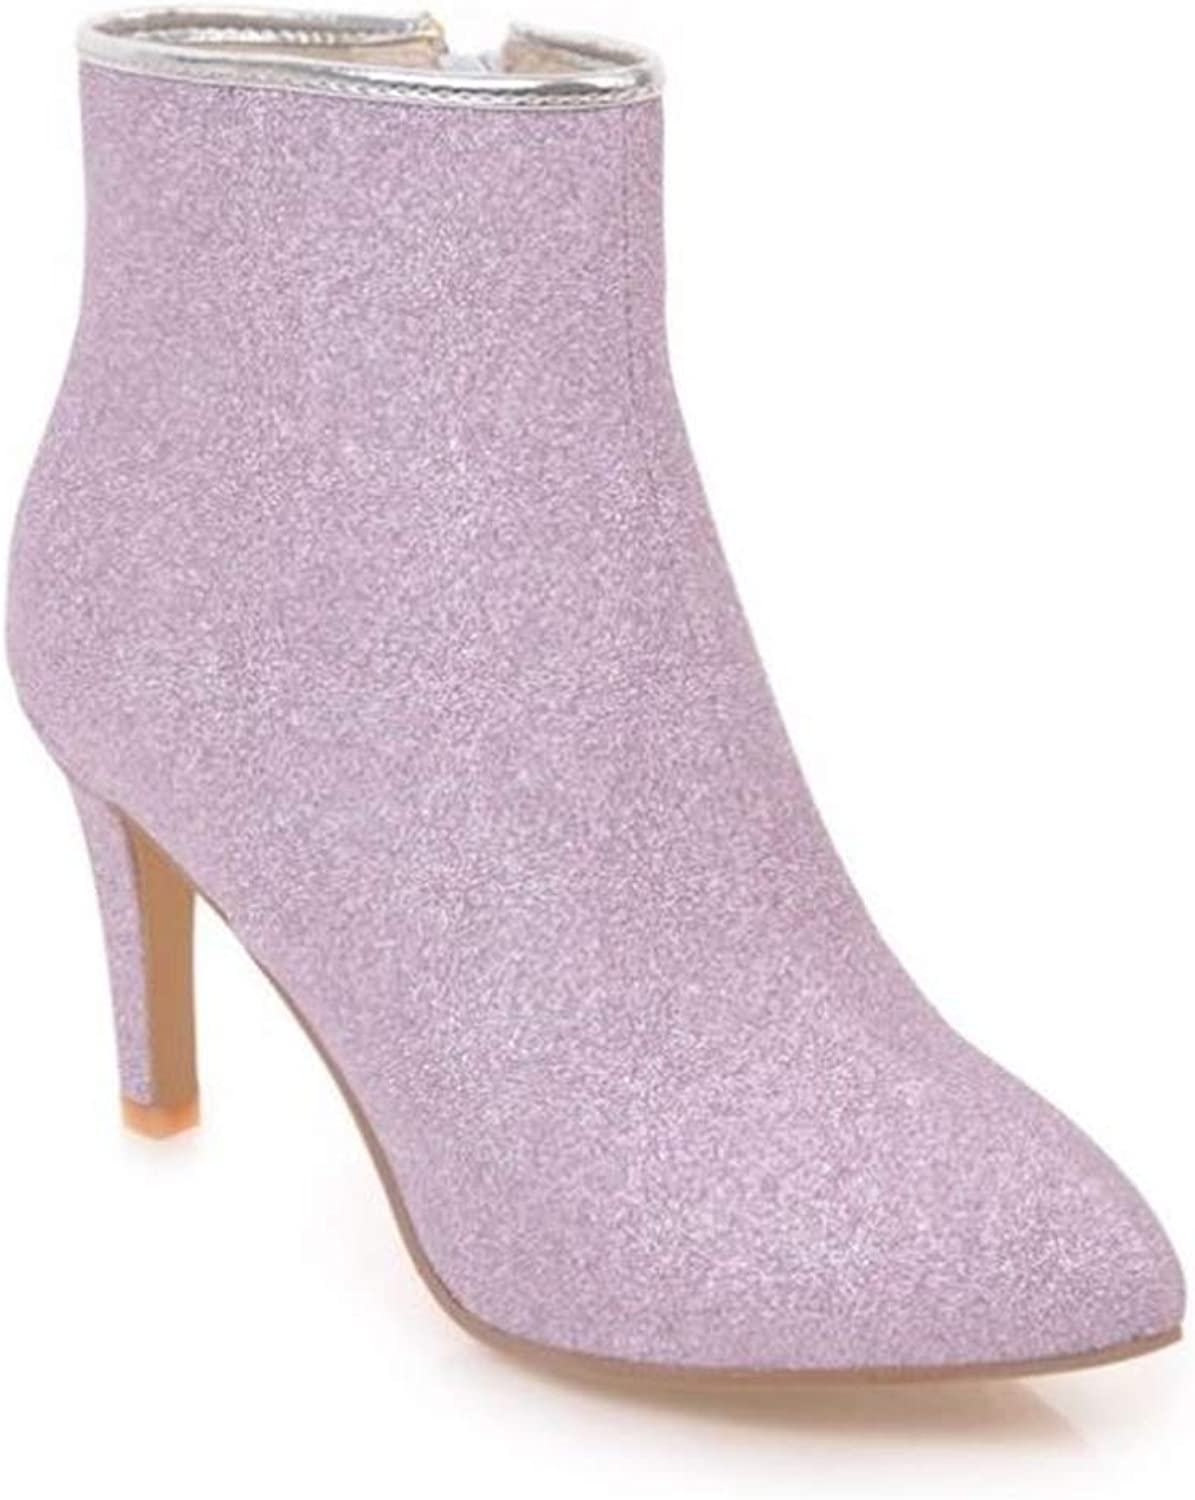 pink town Women's Sexy Sequins Pointed Toe Stiletto High Heel Bridal shoes